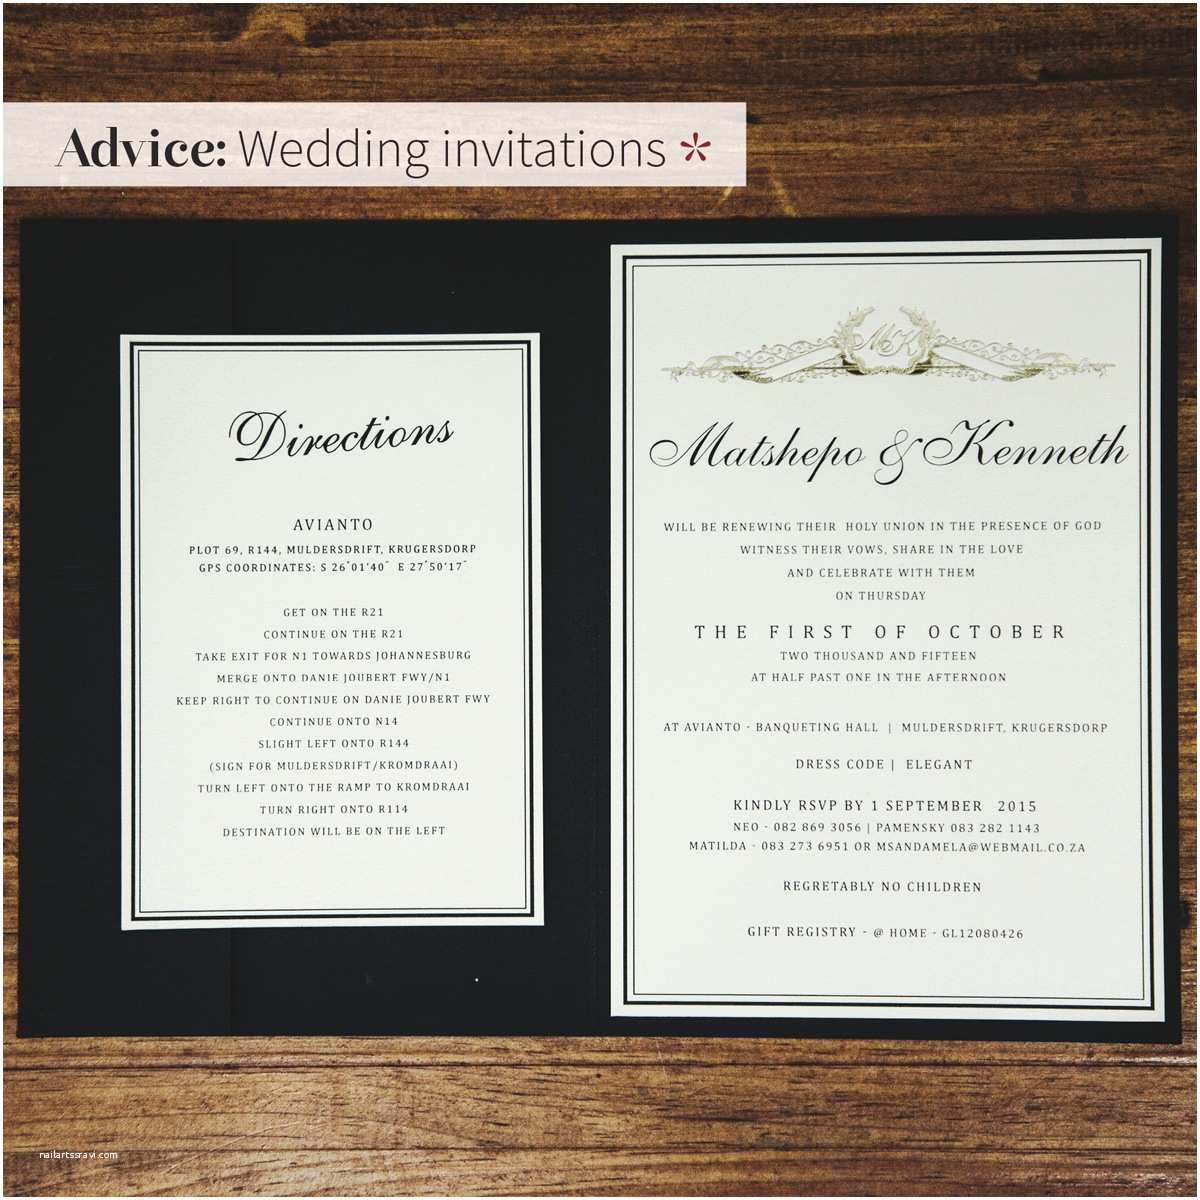 Wedding Invitation Advice the Invite Nubian Bride